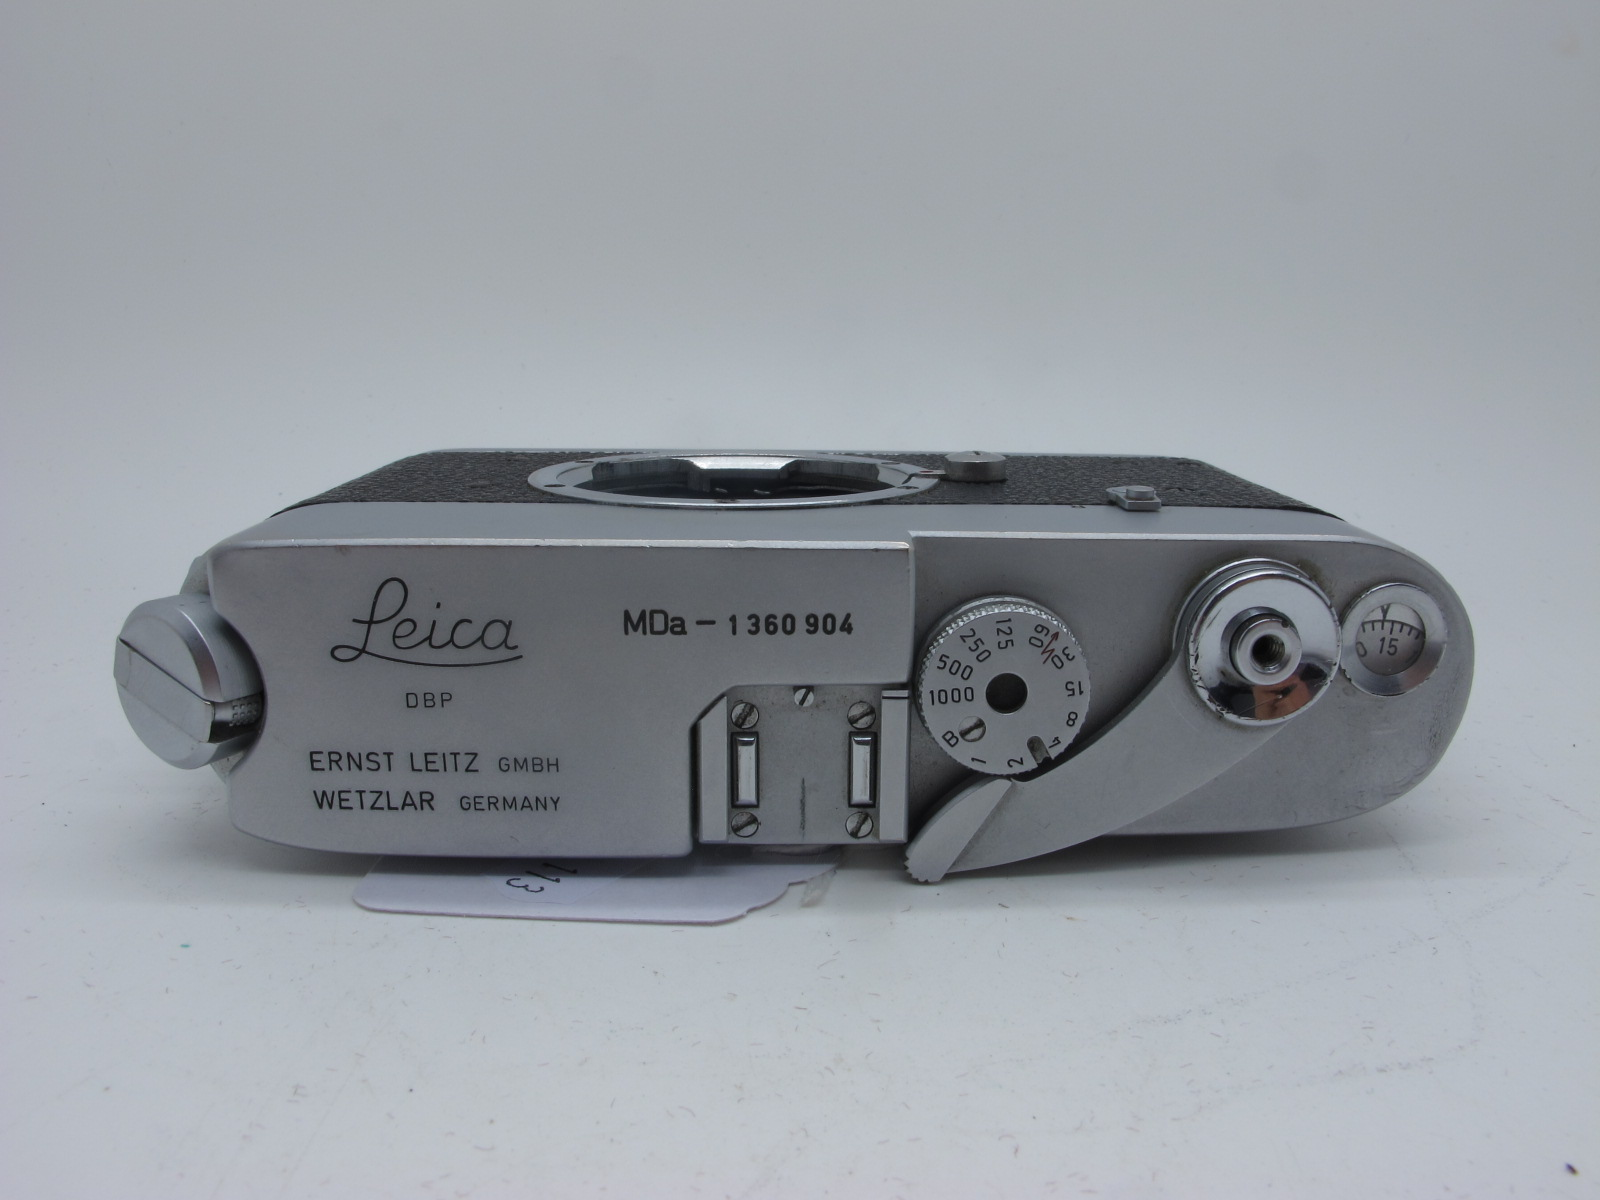 Leica MDa - 1360904 Body Only. - Image 5 of 7